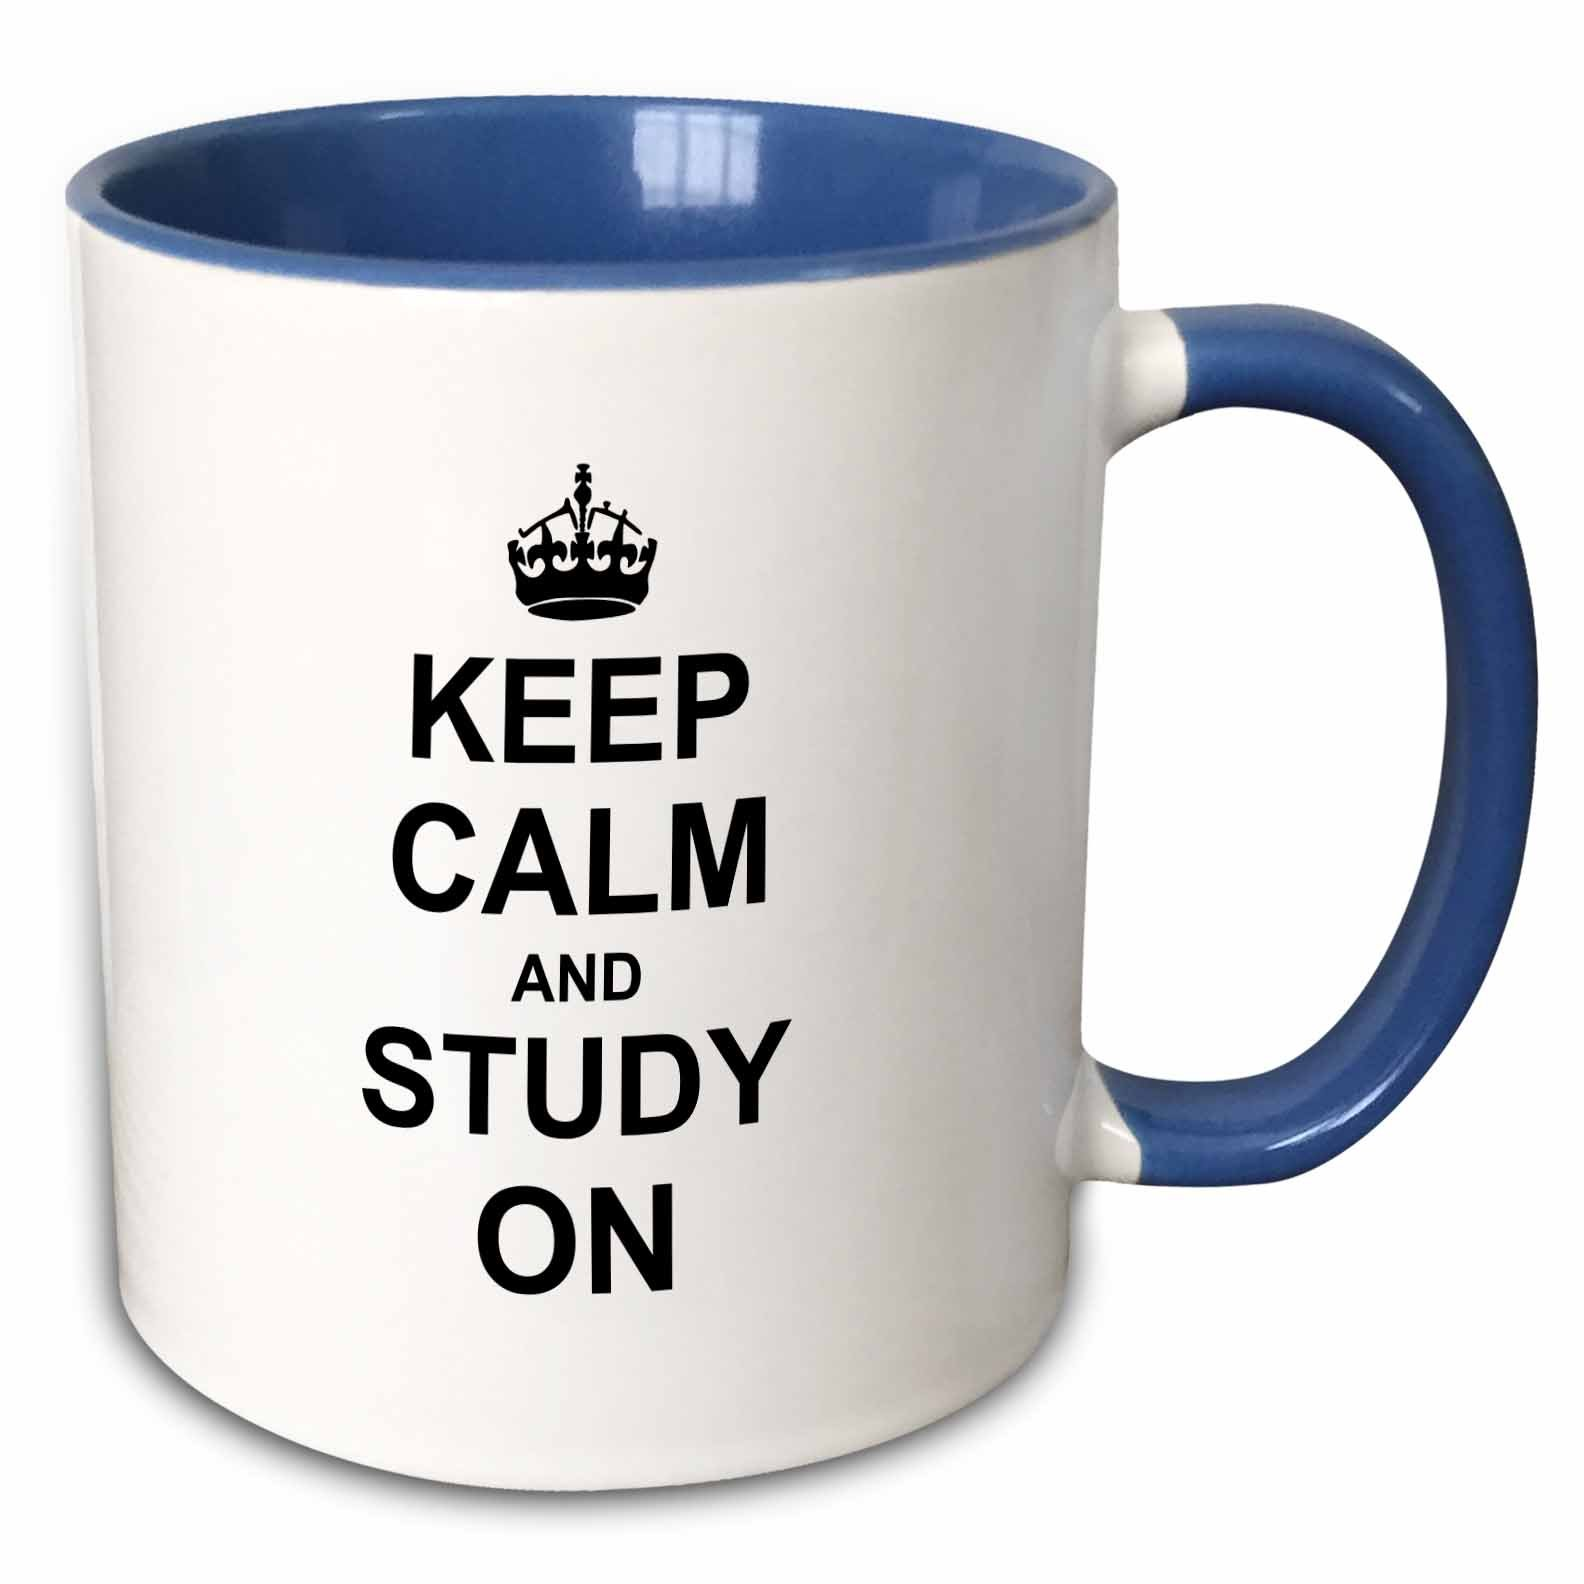 3dRose (mug_157775_6) Keep Calm and Study on - carry on studying - college school or university student funny humor gifts - Two Tone Blue Mug, 11oz